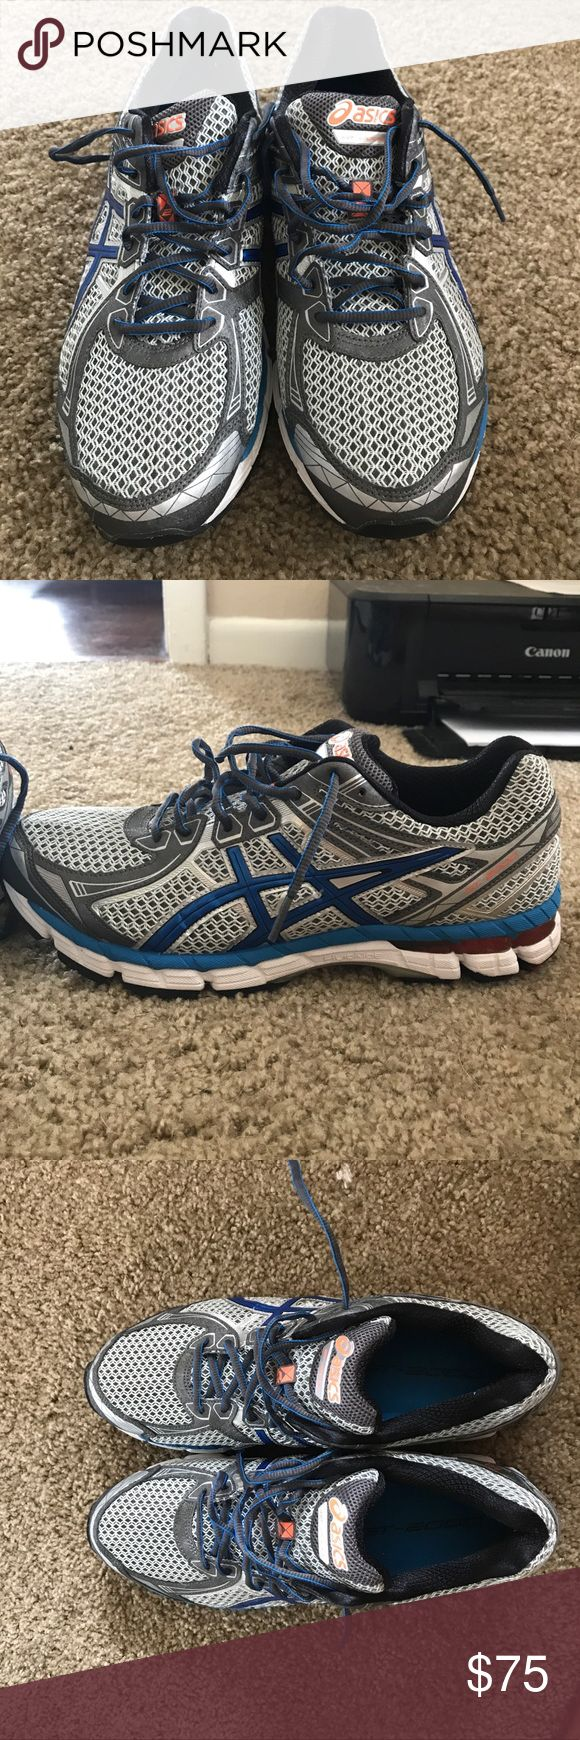 Needed a different style of running shoe Asics GT-2000 running shoe/great support and comfort/only worn once Asics Shoes Sneakers